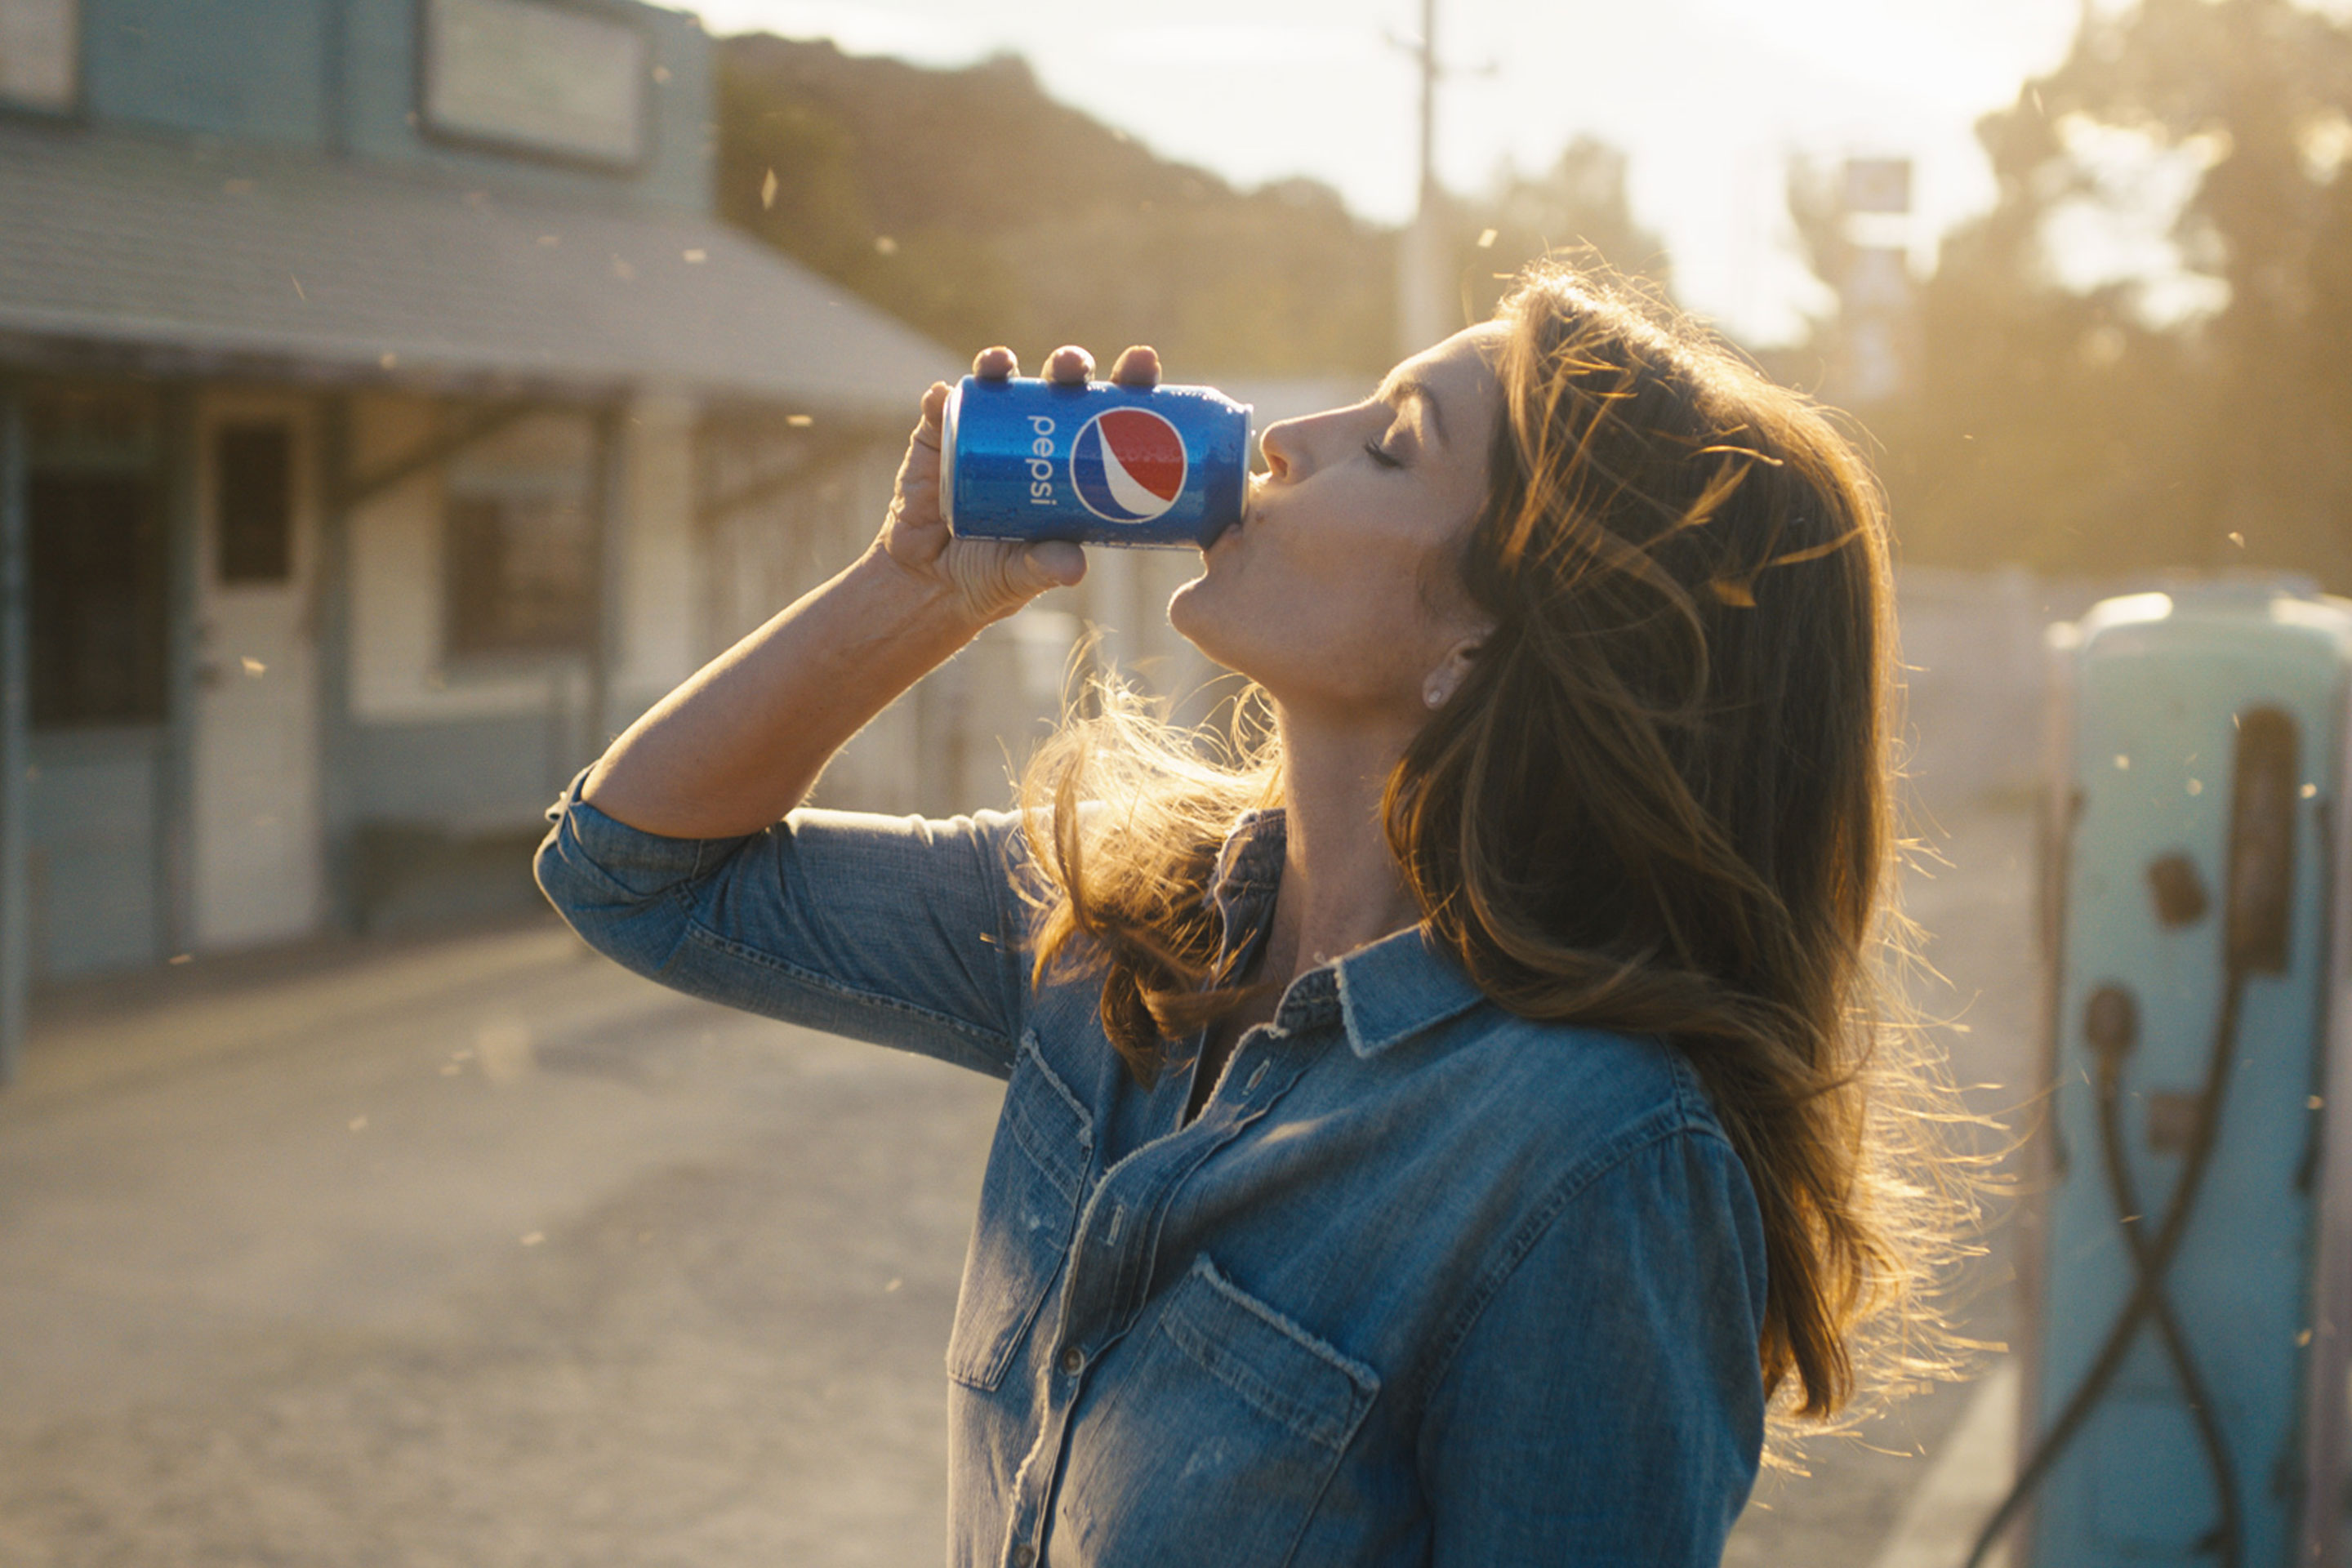 A still image from Pepsi's Super Bowl ad featuring Cindy Crawford.